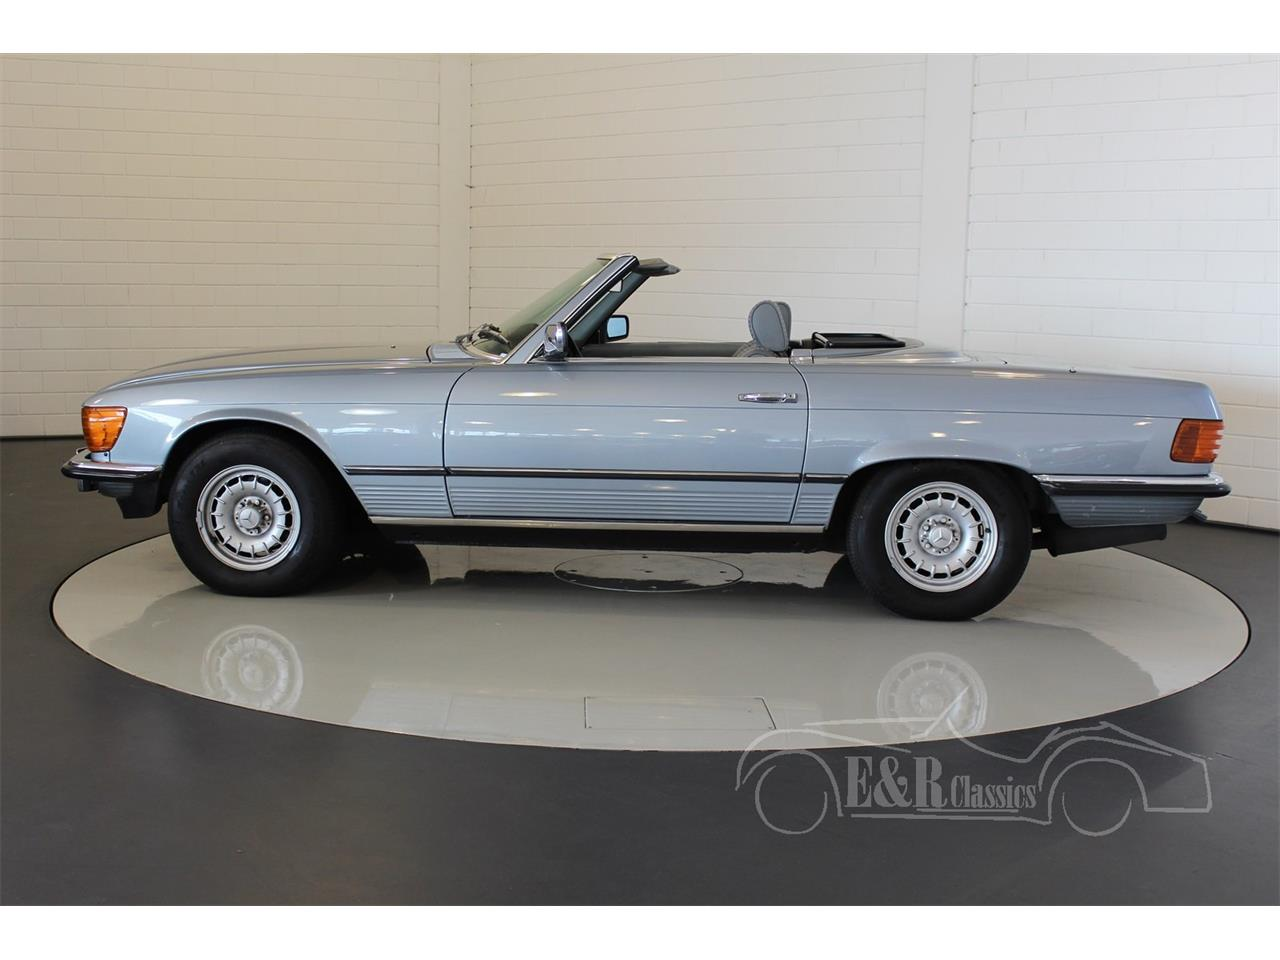 Large Picture of 1983 Mercedes-Benz 280SL - $34,150.00 Offered by E & R Classics - QEBS